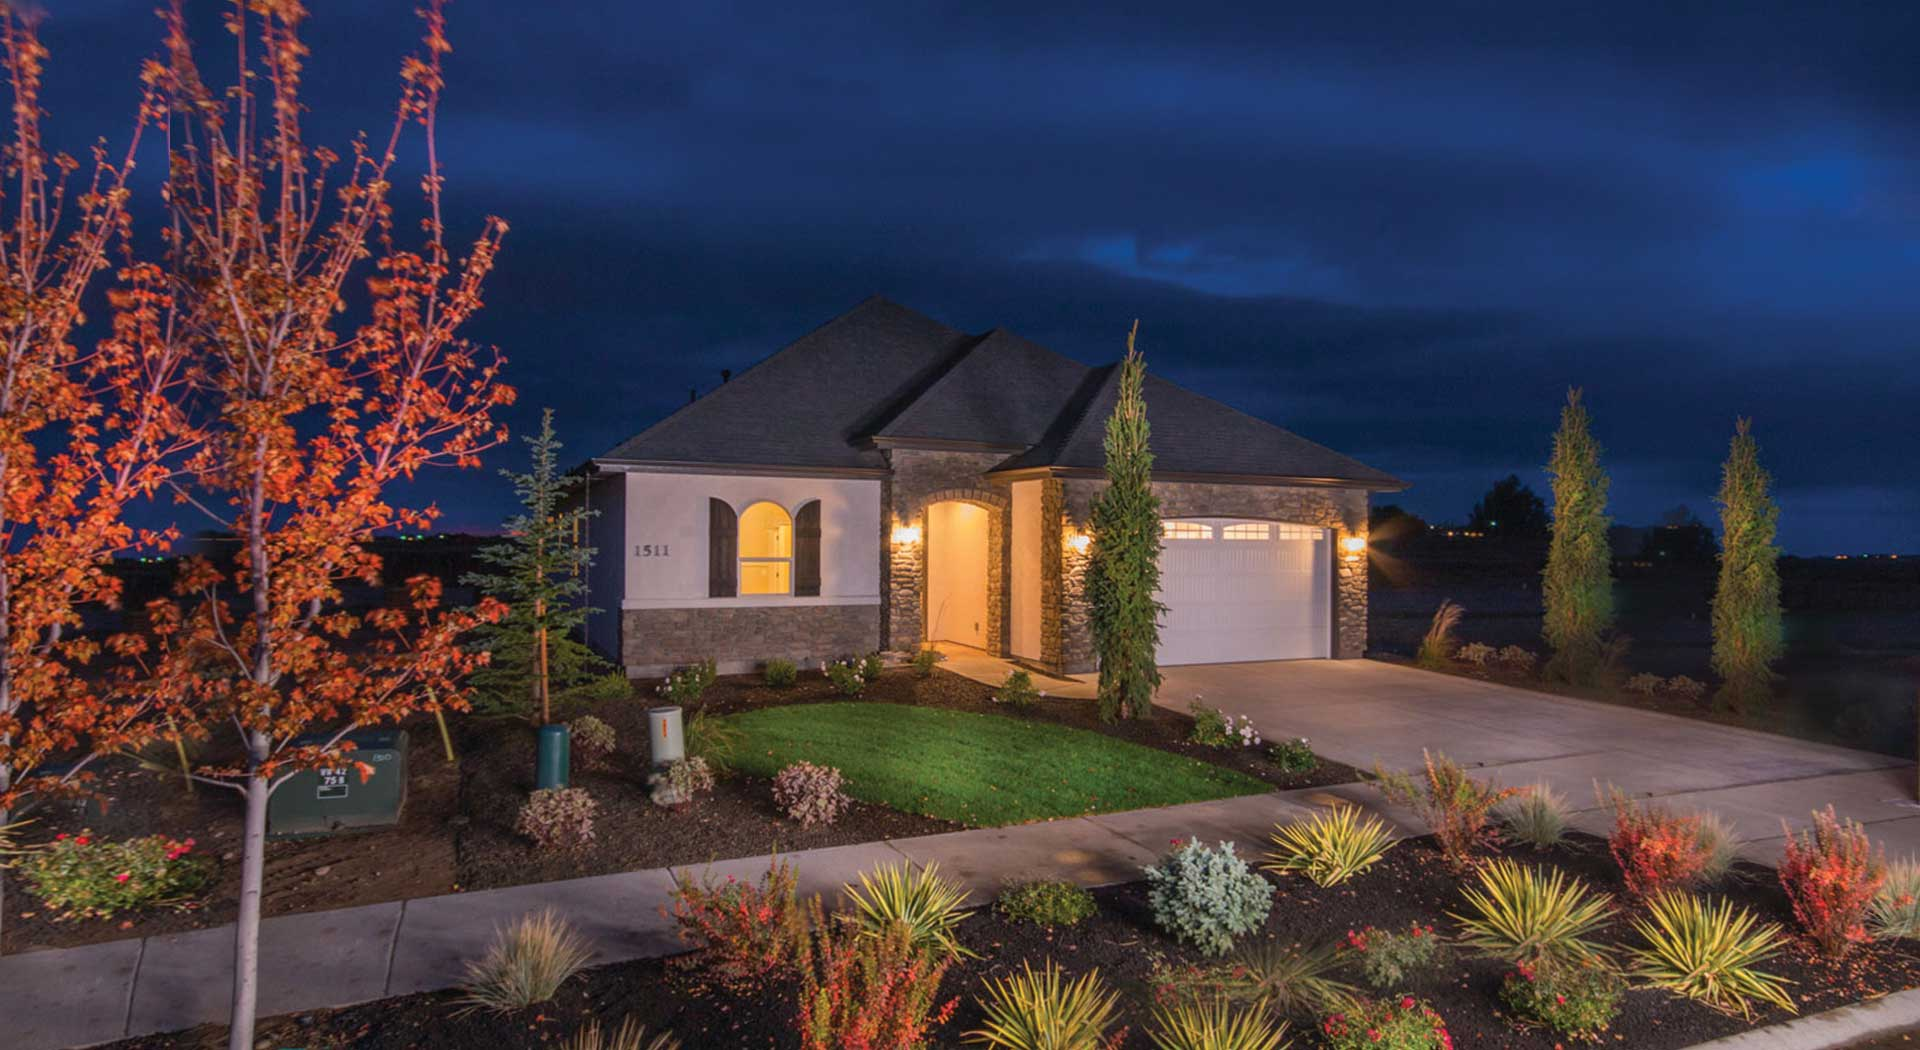 Boise Idaho's Ultimate Home Search: Home's For Sale + Boise Real Estate